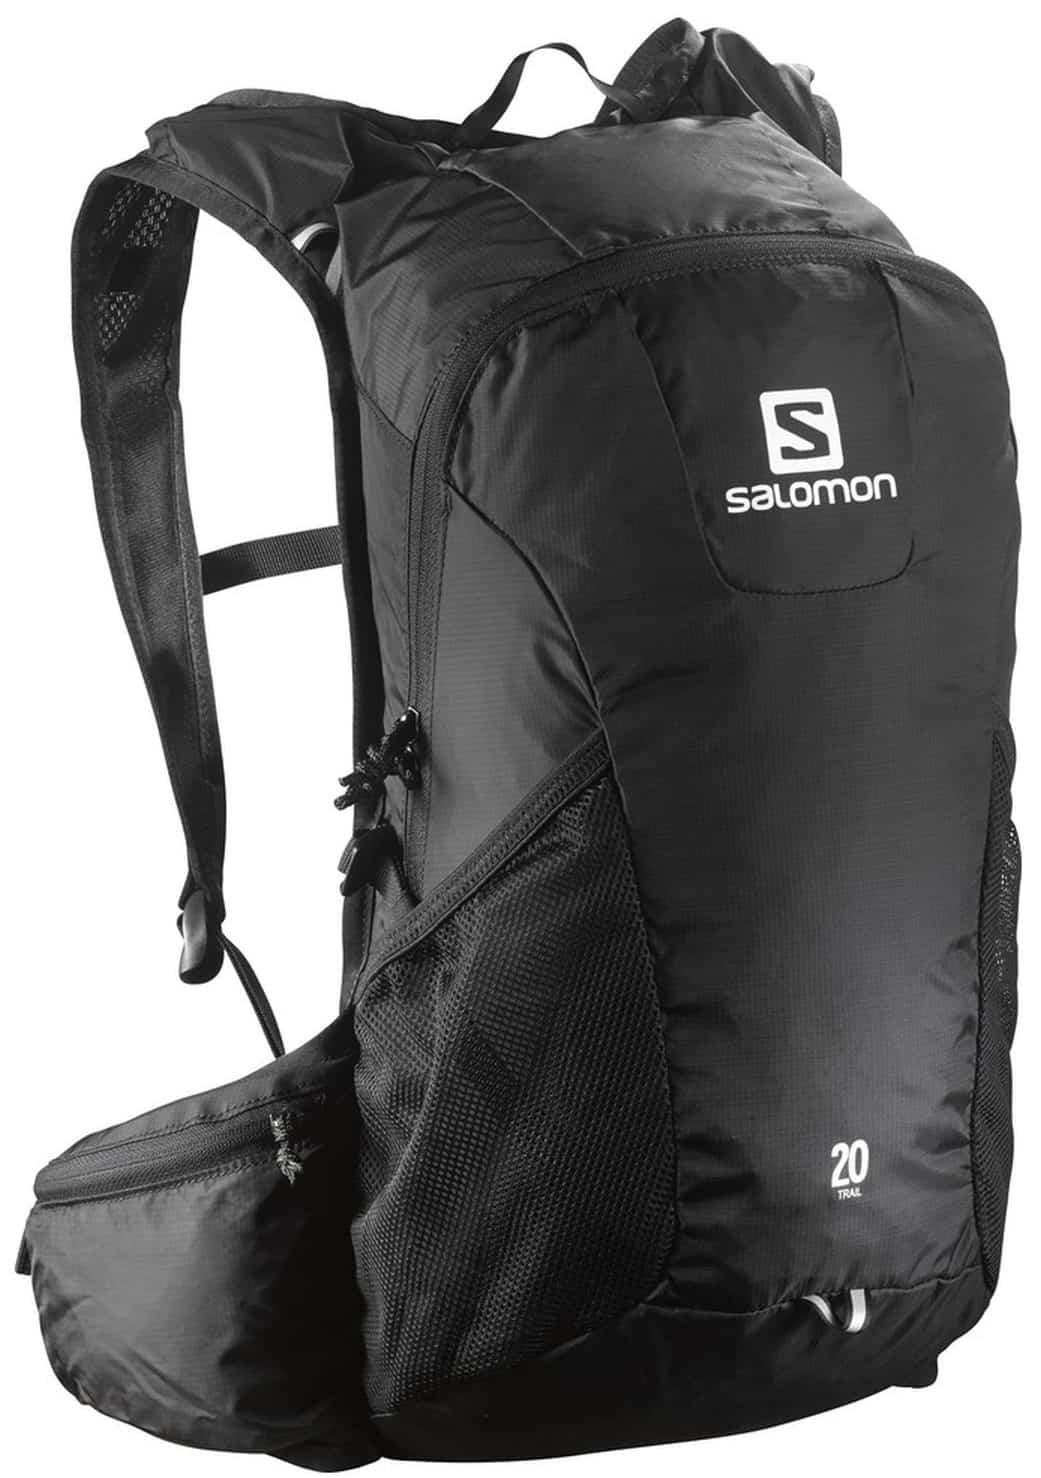 Best Small Rucksack for Travelling – Salomon